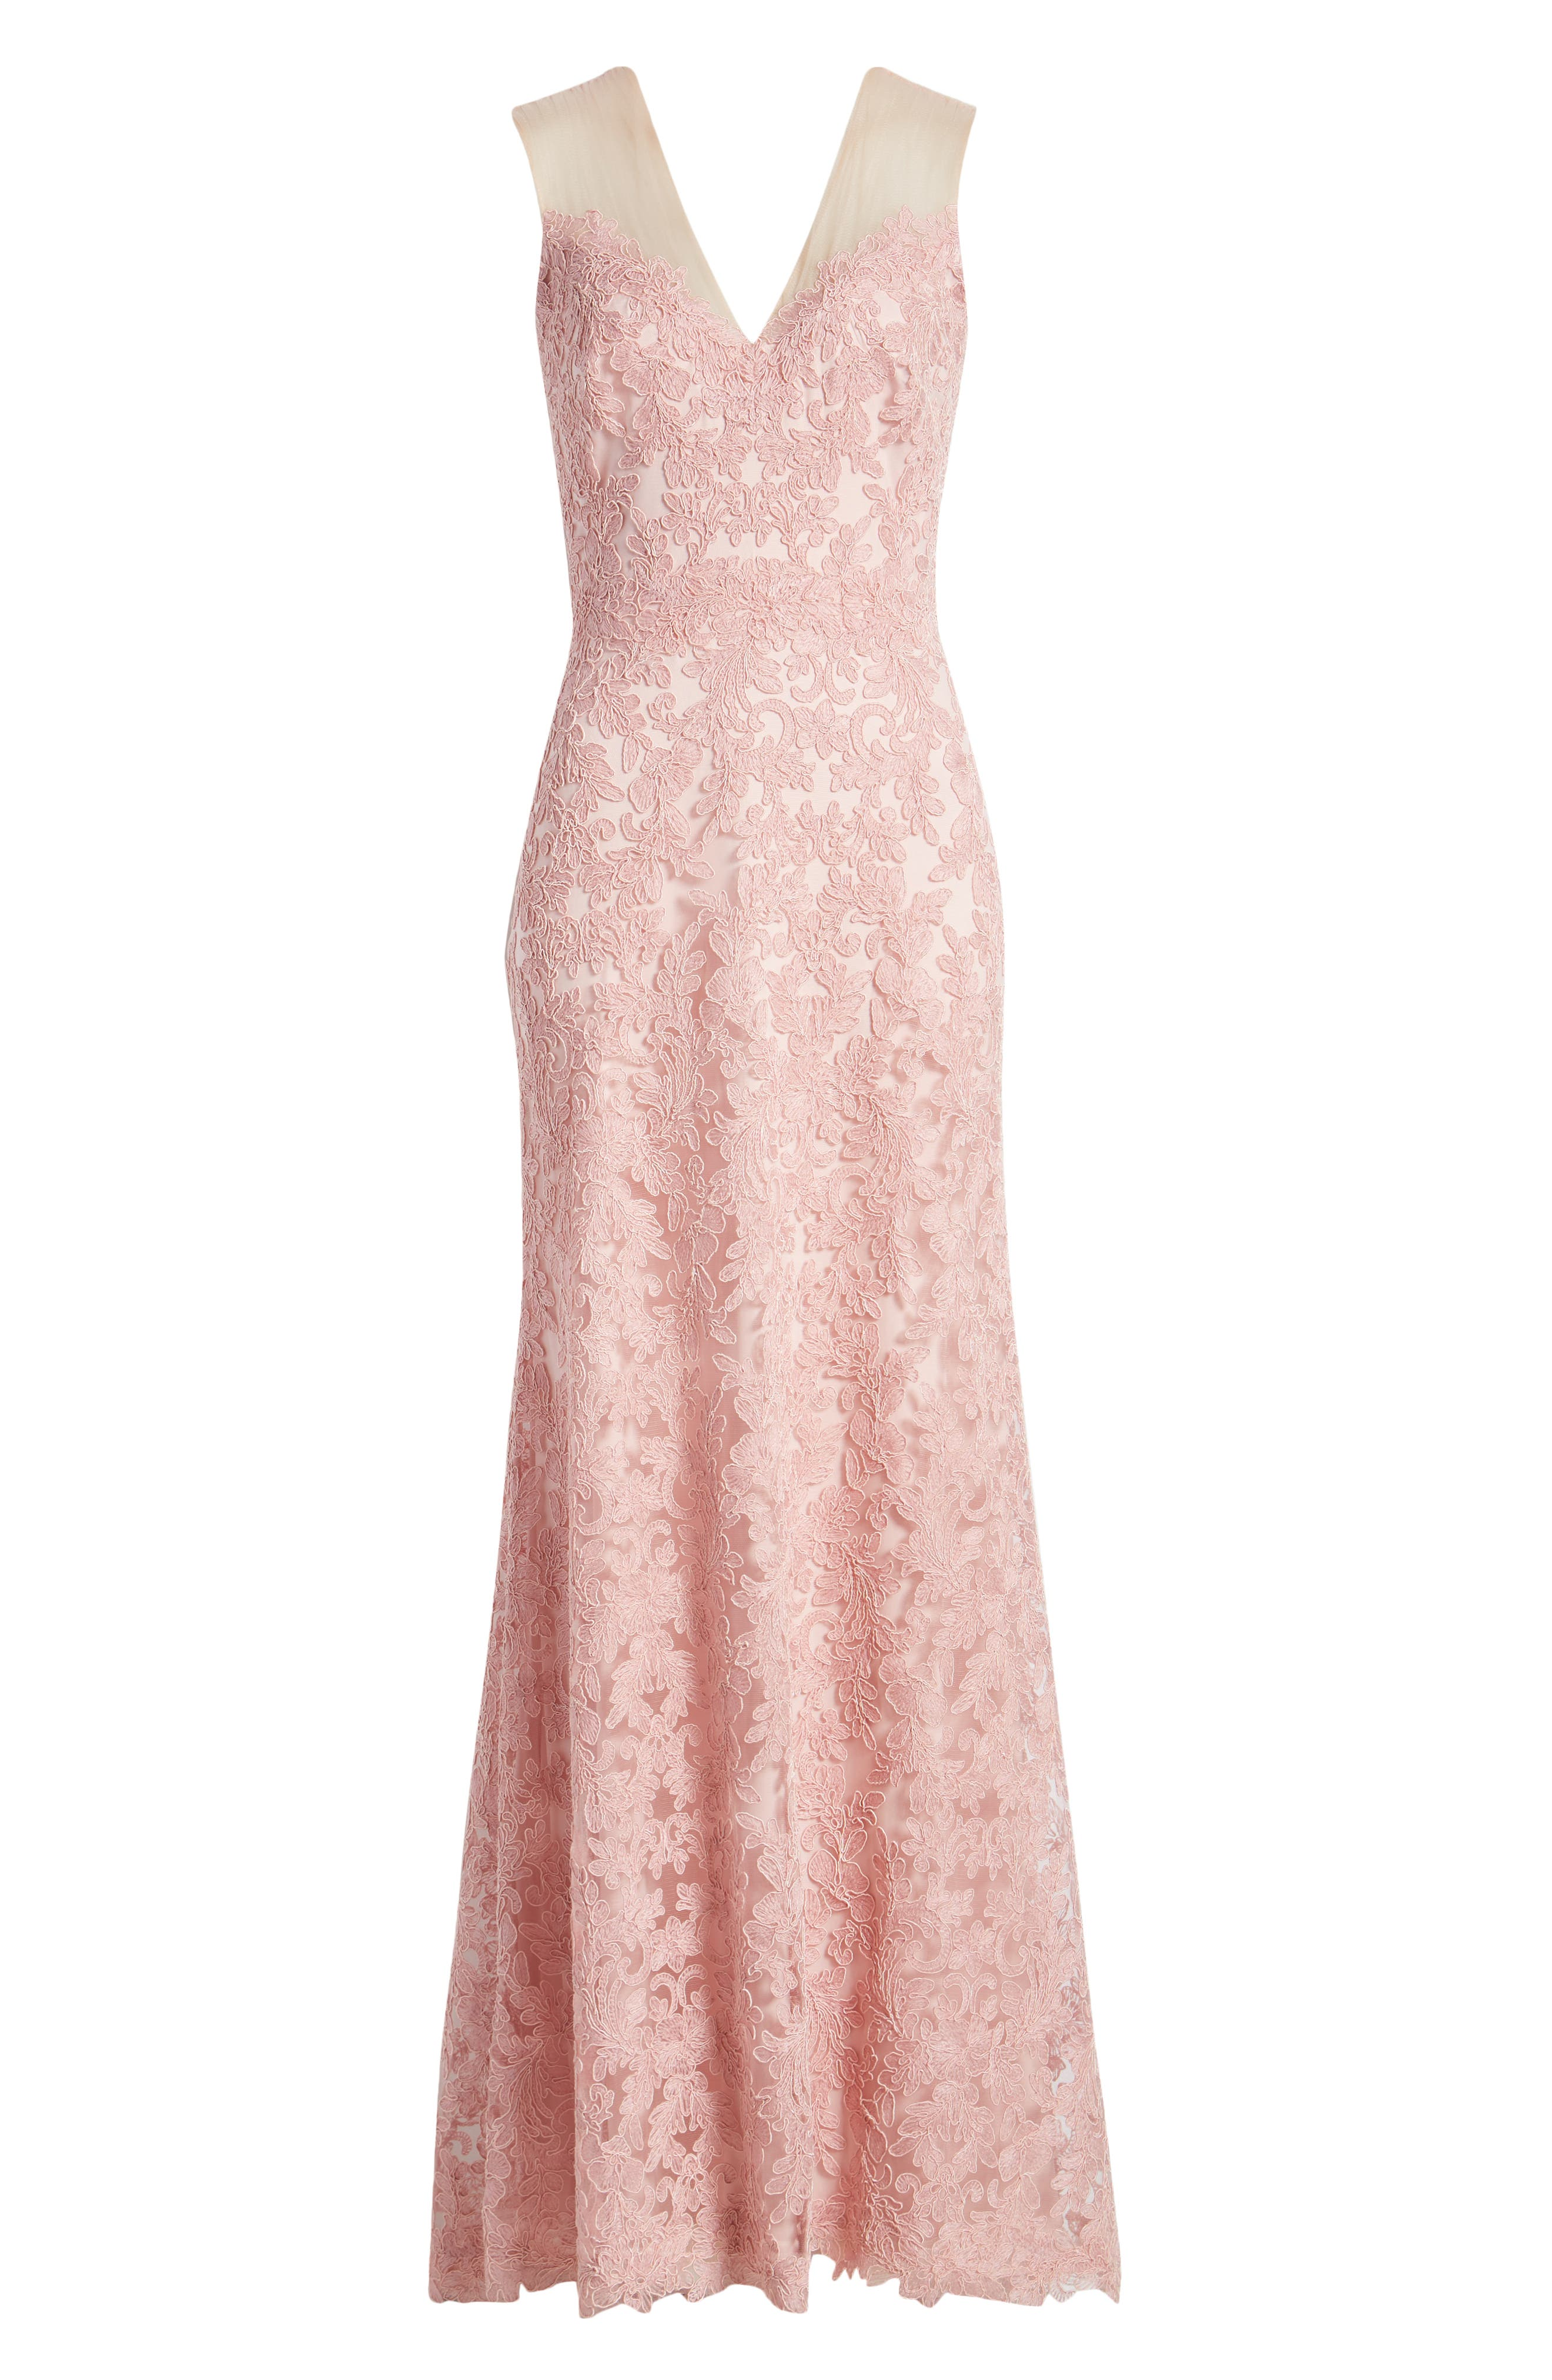 1950s History of Prom, Party, Evening and Formal Dresses Womens Tadashi Shoji Lace Gown Size 6 - Pink $428.00 AT vintagedancer.com